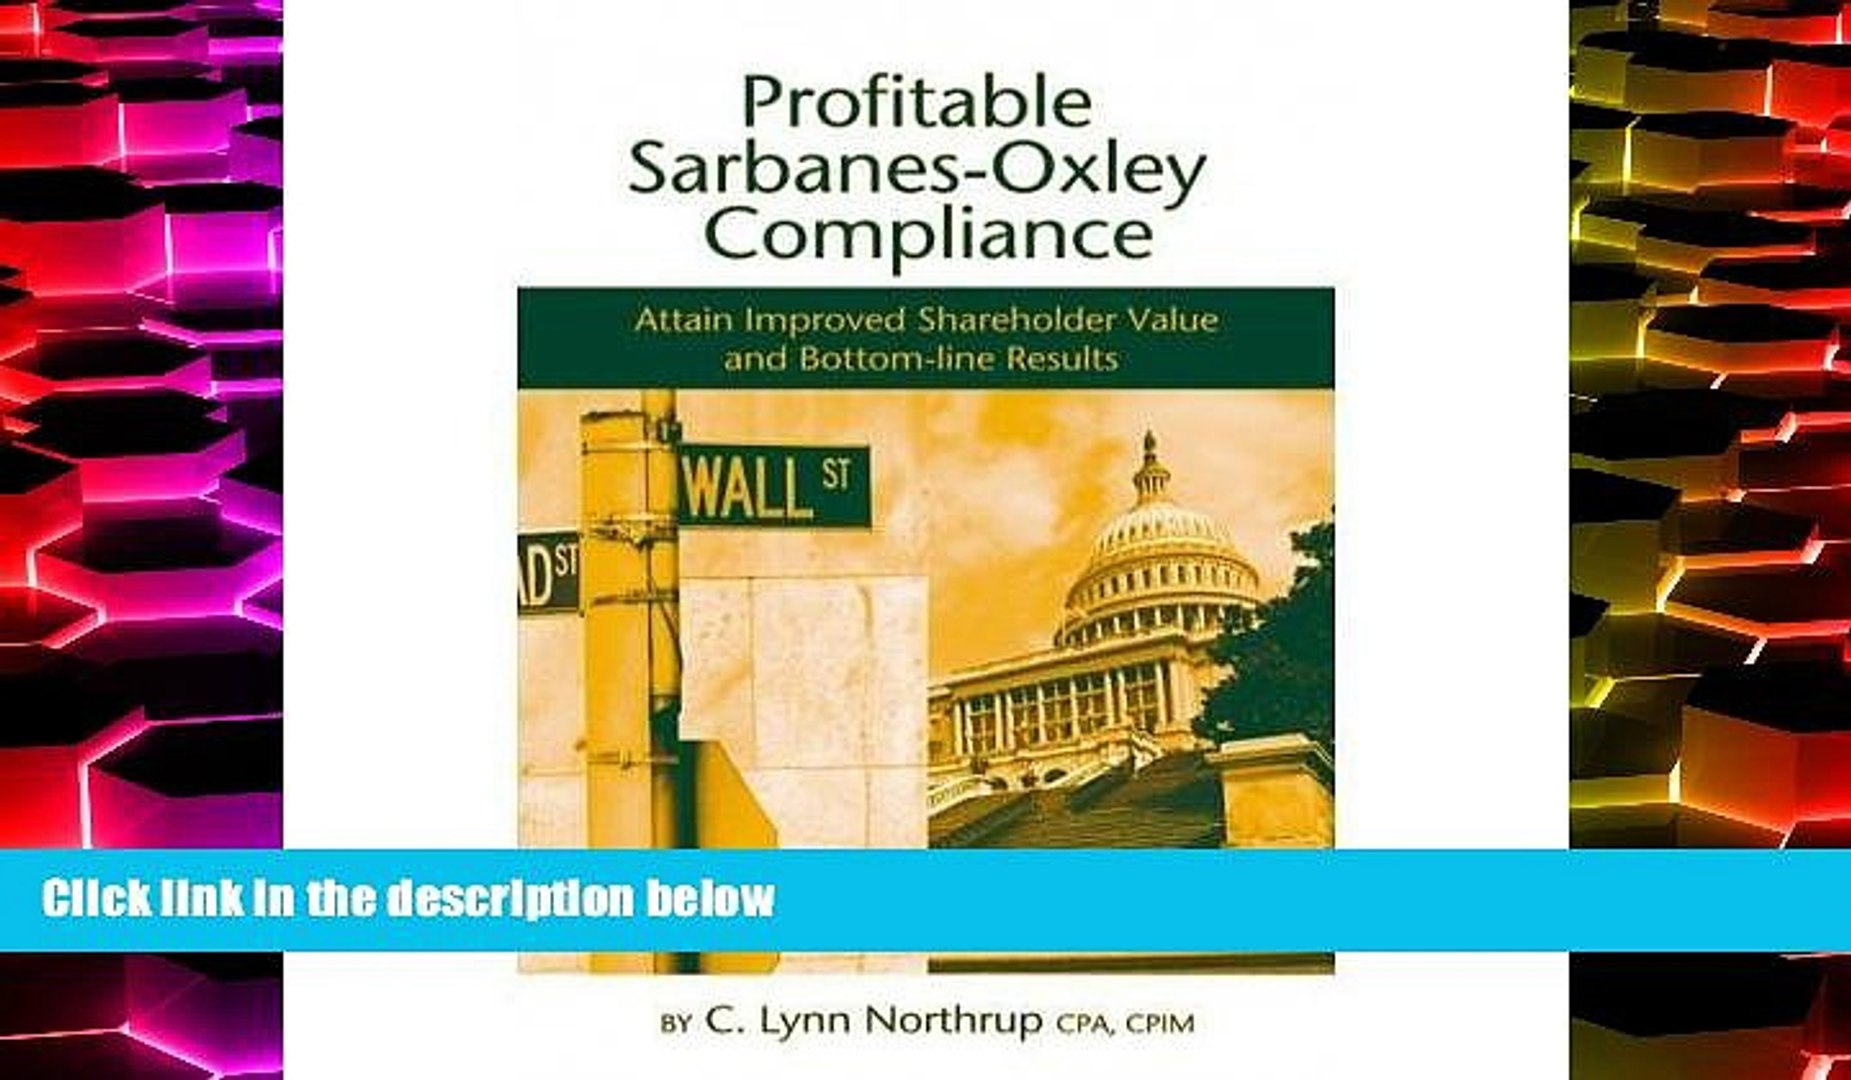 Best Price Profitable Sarbanes-Oxley Compliance: Attain Improved Shareholder Value and Bottom-line